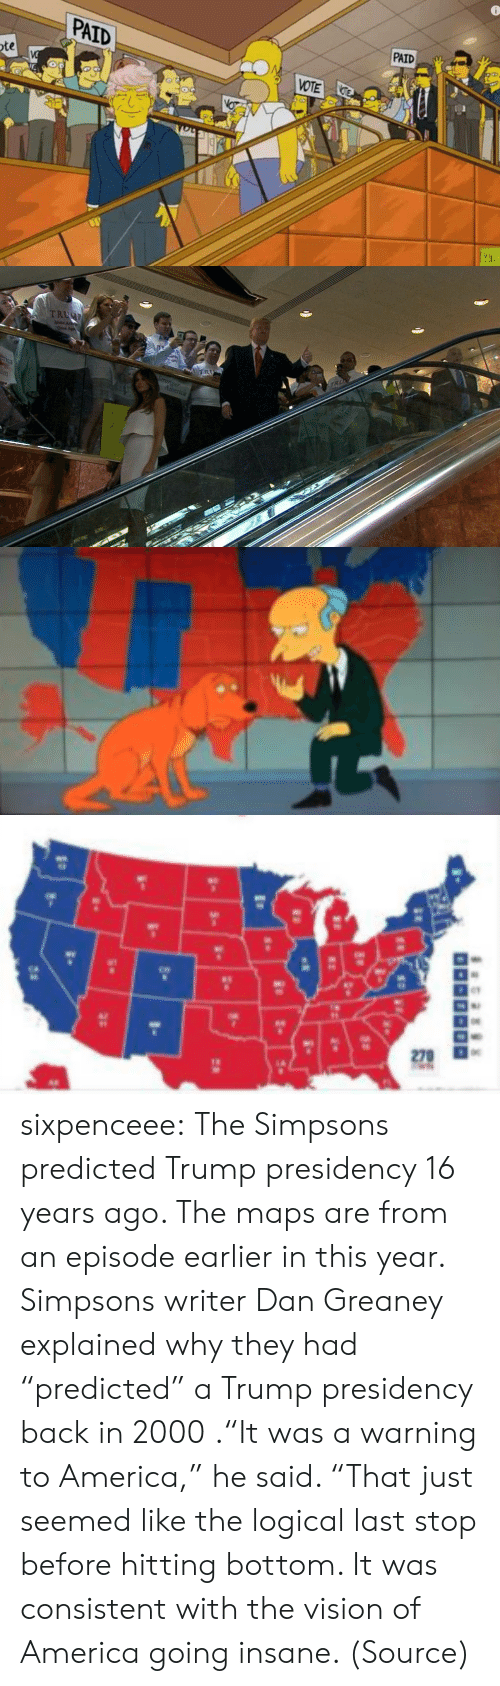 "America, News, and The Simpsons: PAID  PAID  VOTE  te   TRUC  TR  Strorger  America   270  1-  25 sixpenceee:  The Simpsons predicted Trump presidency 16 years ago. The maps are from an episode earlier in this year. Simpsons writer Dan Greaney ex­­plained why they had ""predicted"" a Trump presidency back in 2000 .""It was a warning to America,"" he said. ""That just seemed like the logical last stop before hitting bottom. It was consistent with the vision of America going insane. (Source)"